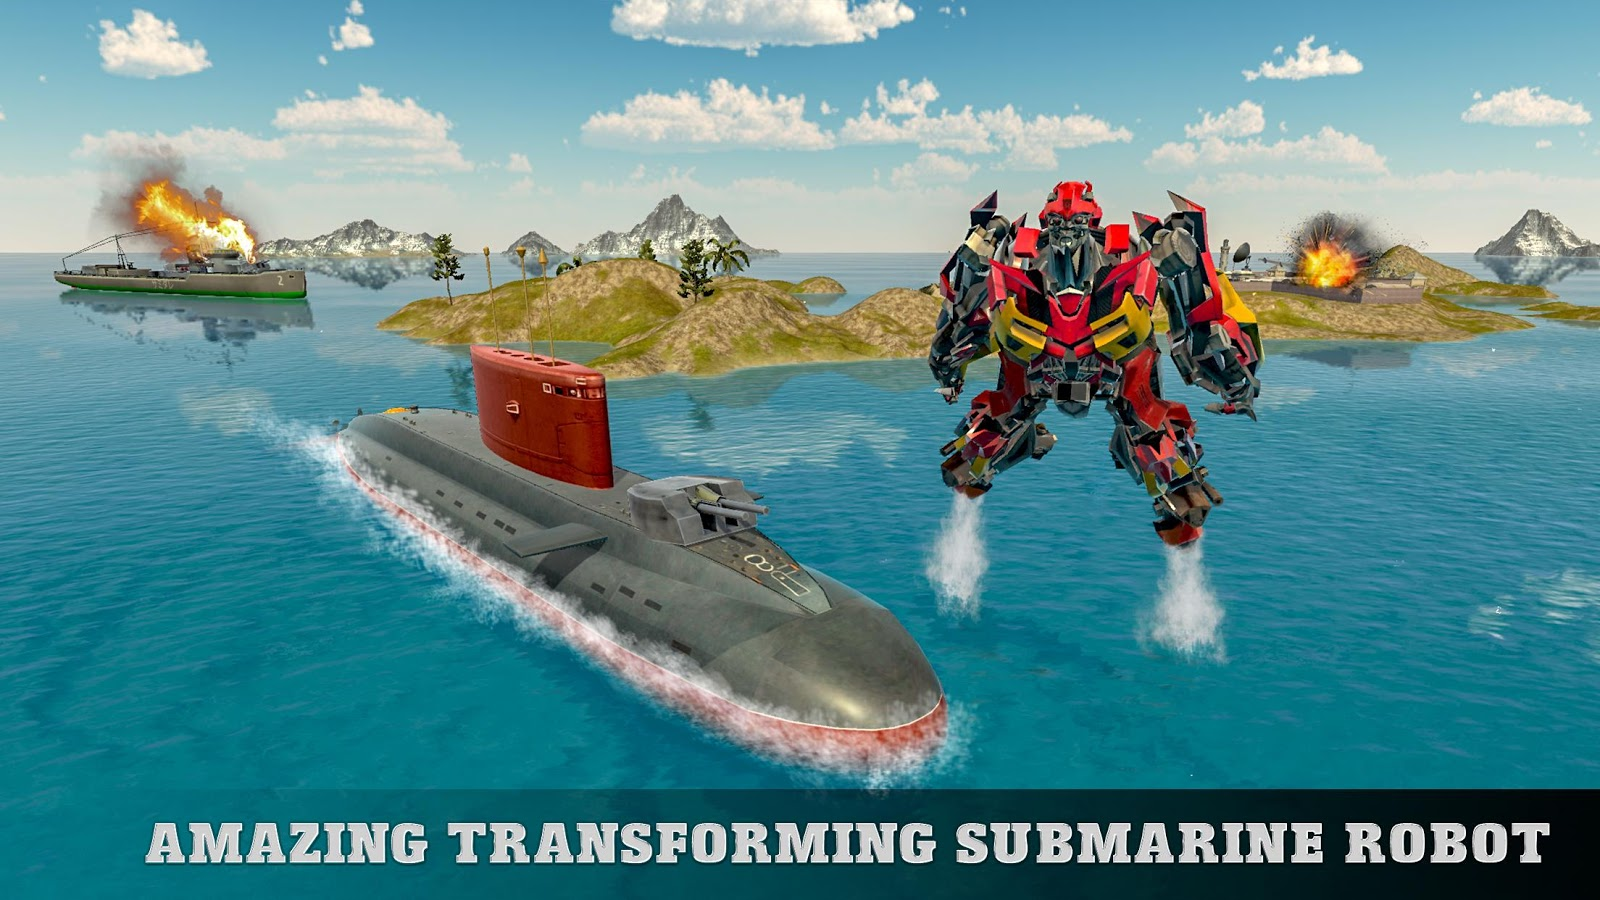 Russian Submarine Robot Transformation Battleship- screenshot